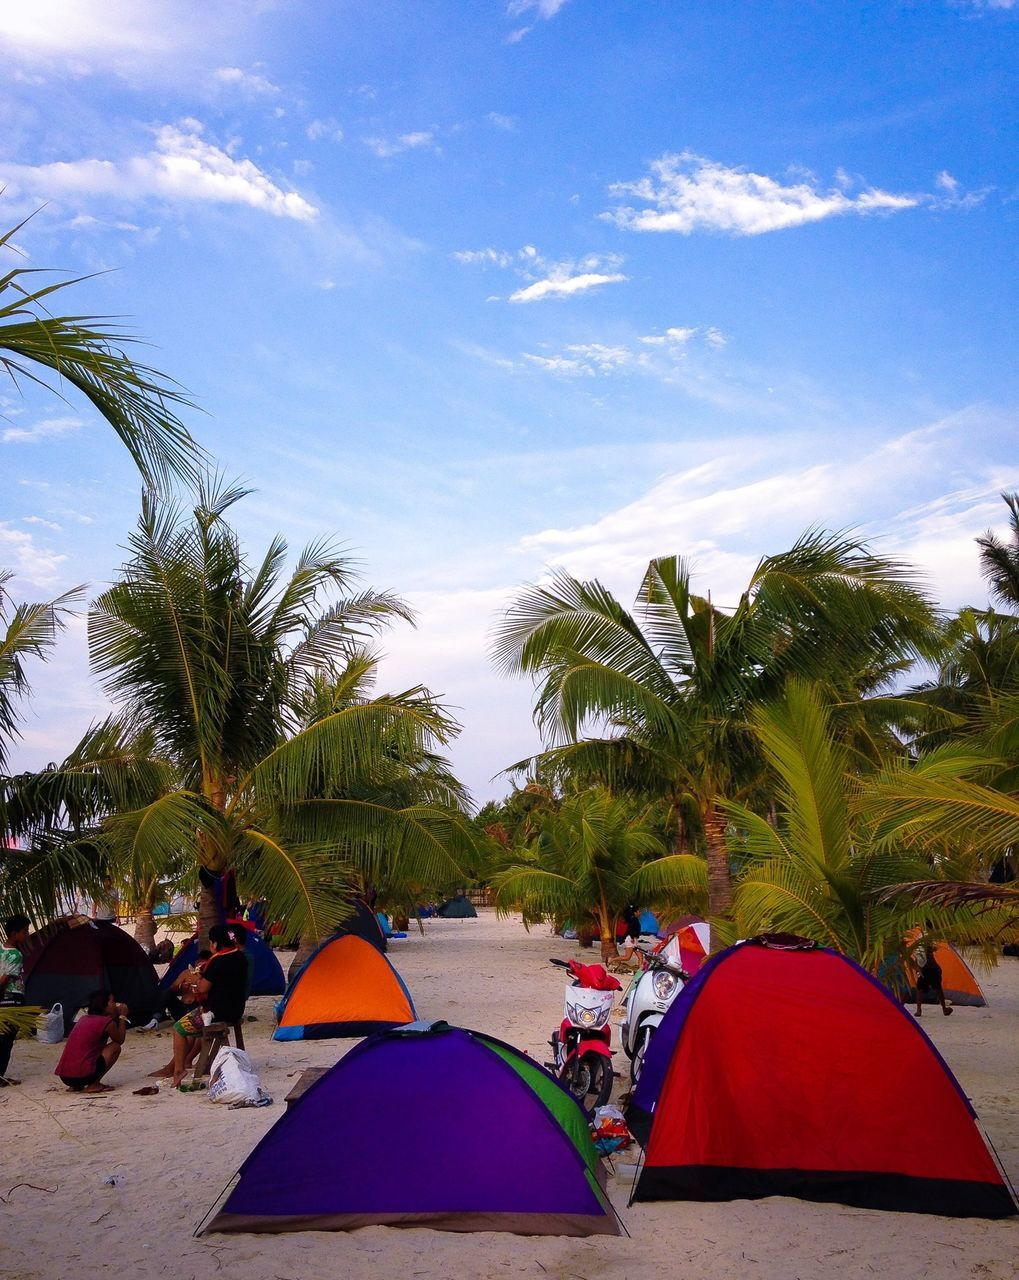 tent, adventure, recreation, camping, shelter, sky, enjoyment, nature, tree, environment, landscape, beach, blue sky, beauty in nature, friendship, scenery, people, outdoors